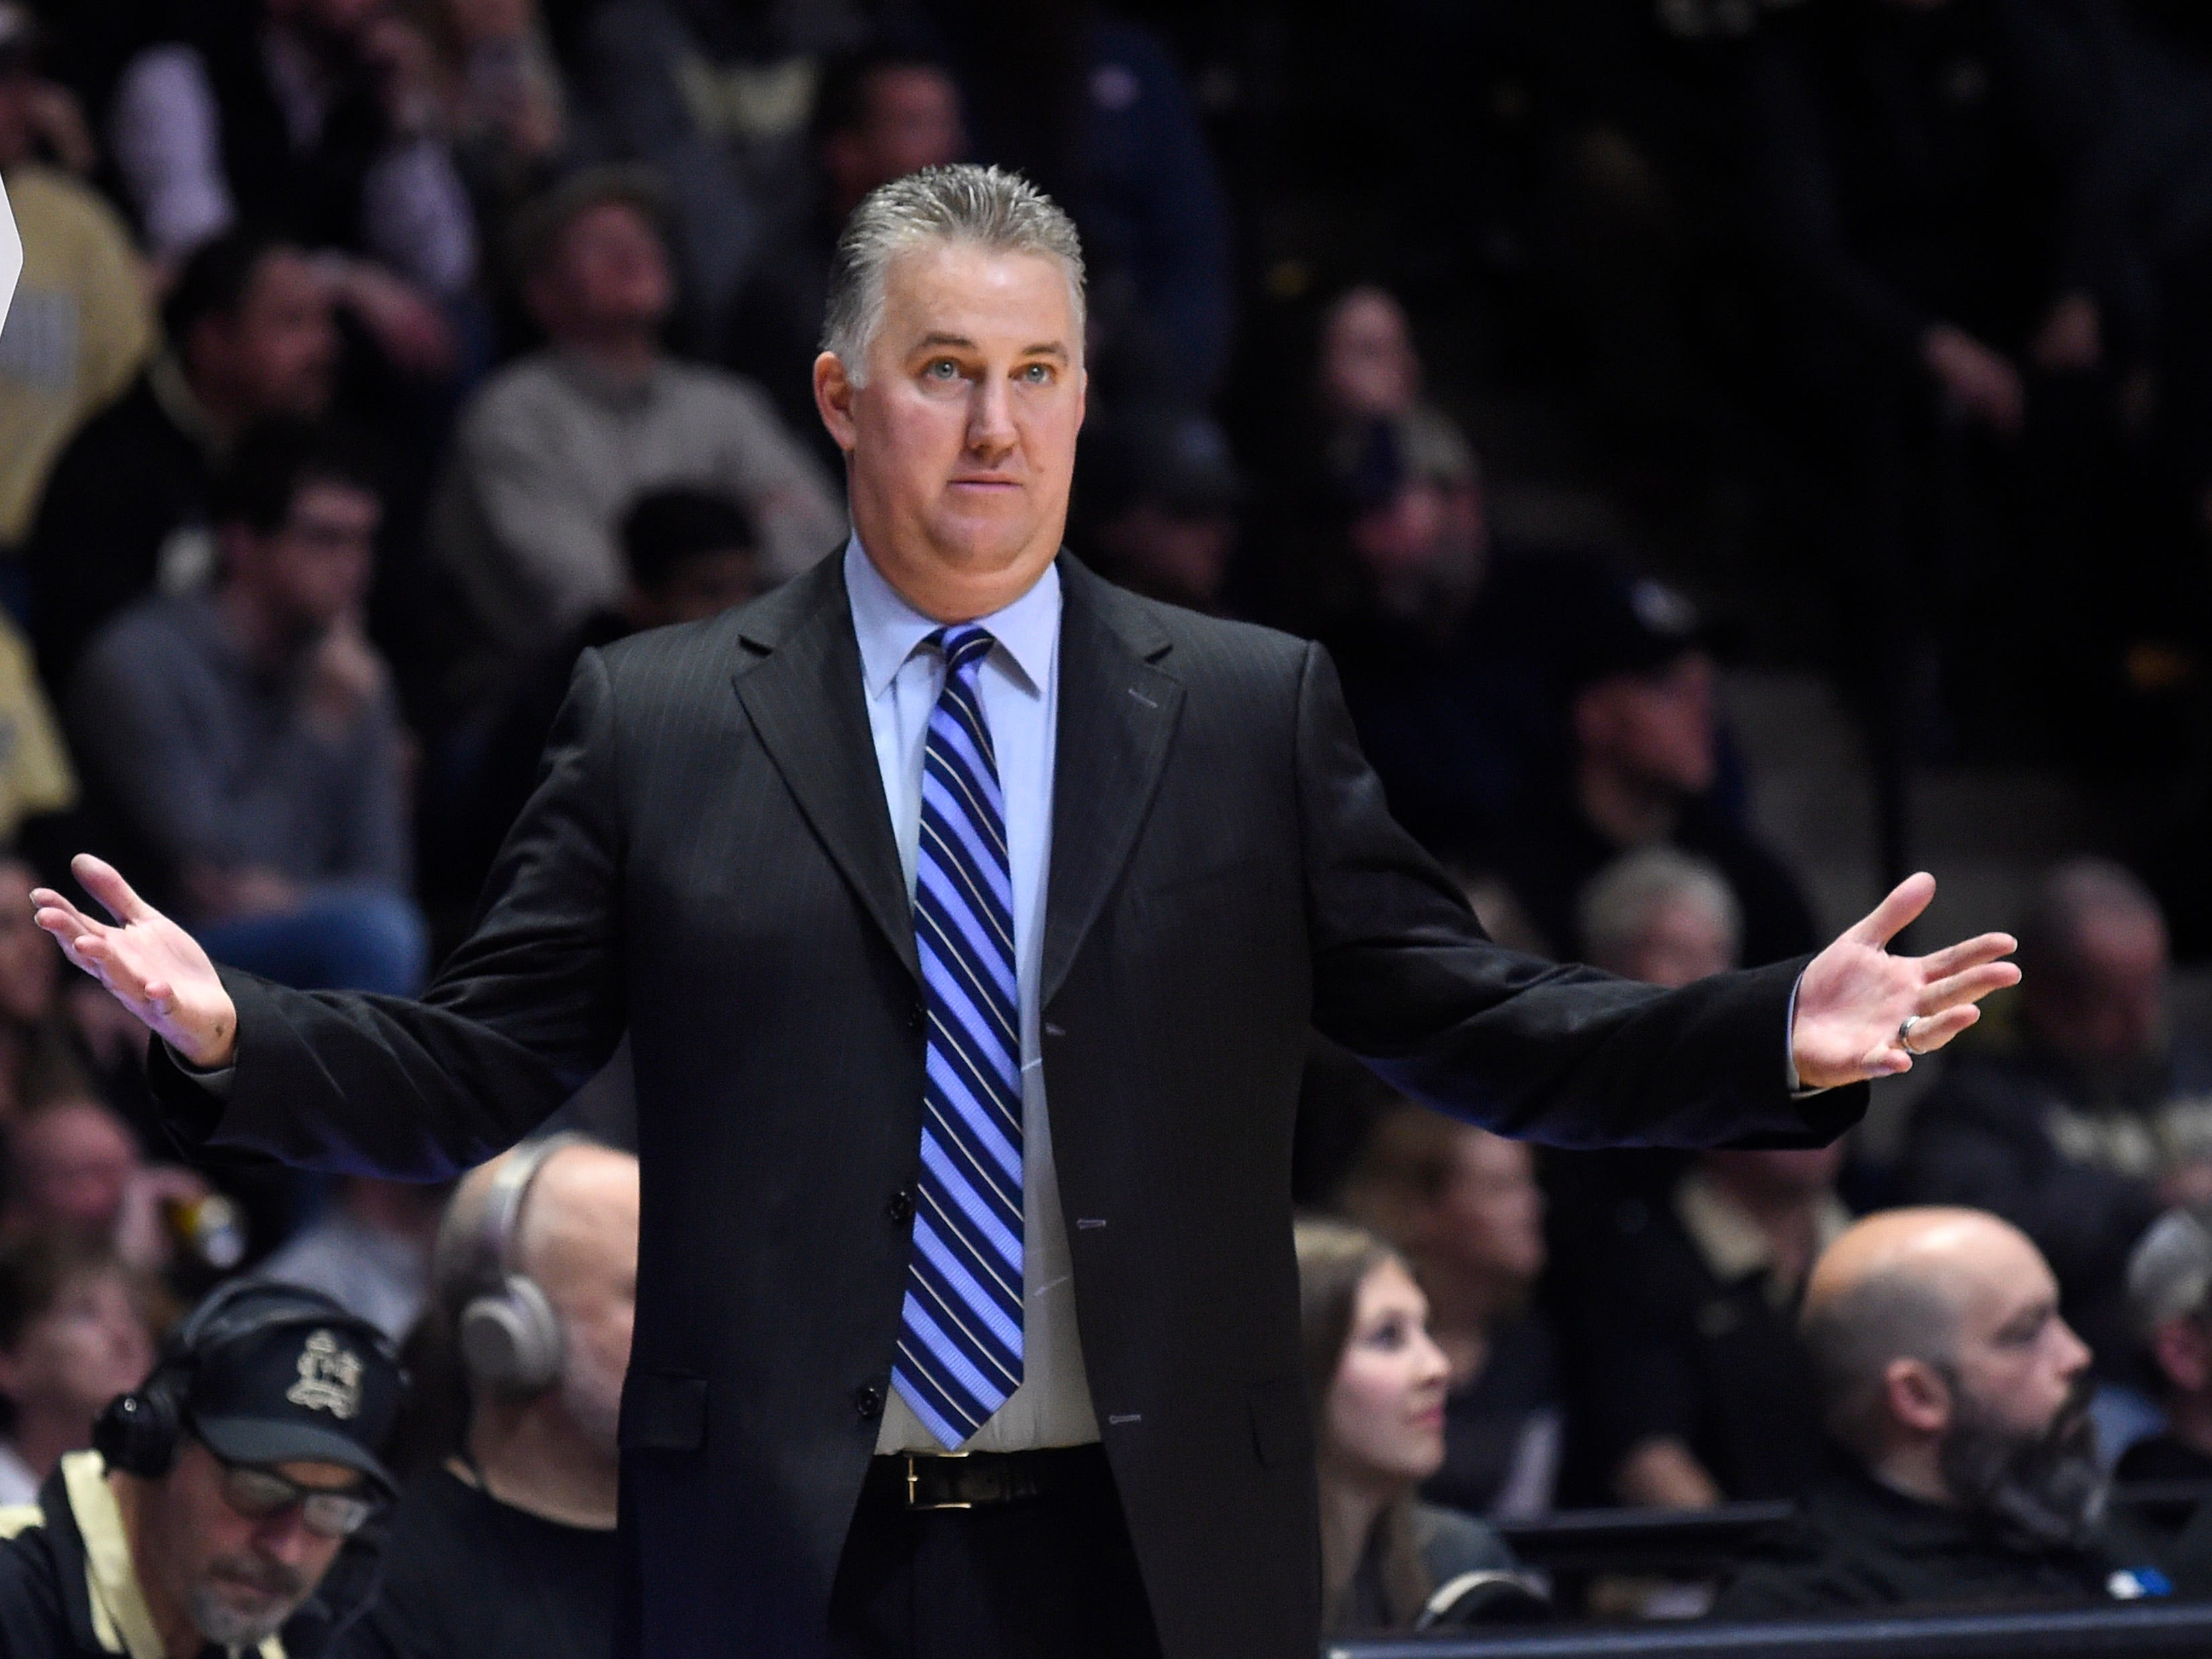 Purdue has seemingly overachieved this season under coach Matt Painter.